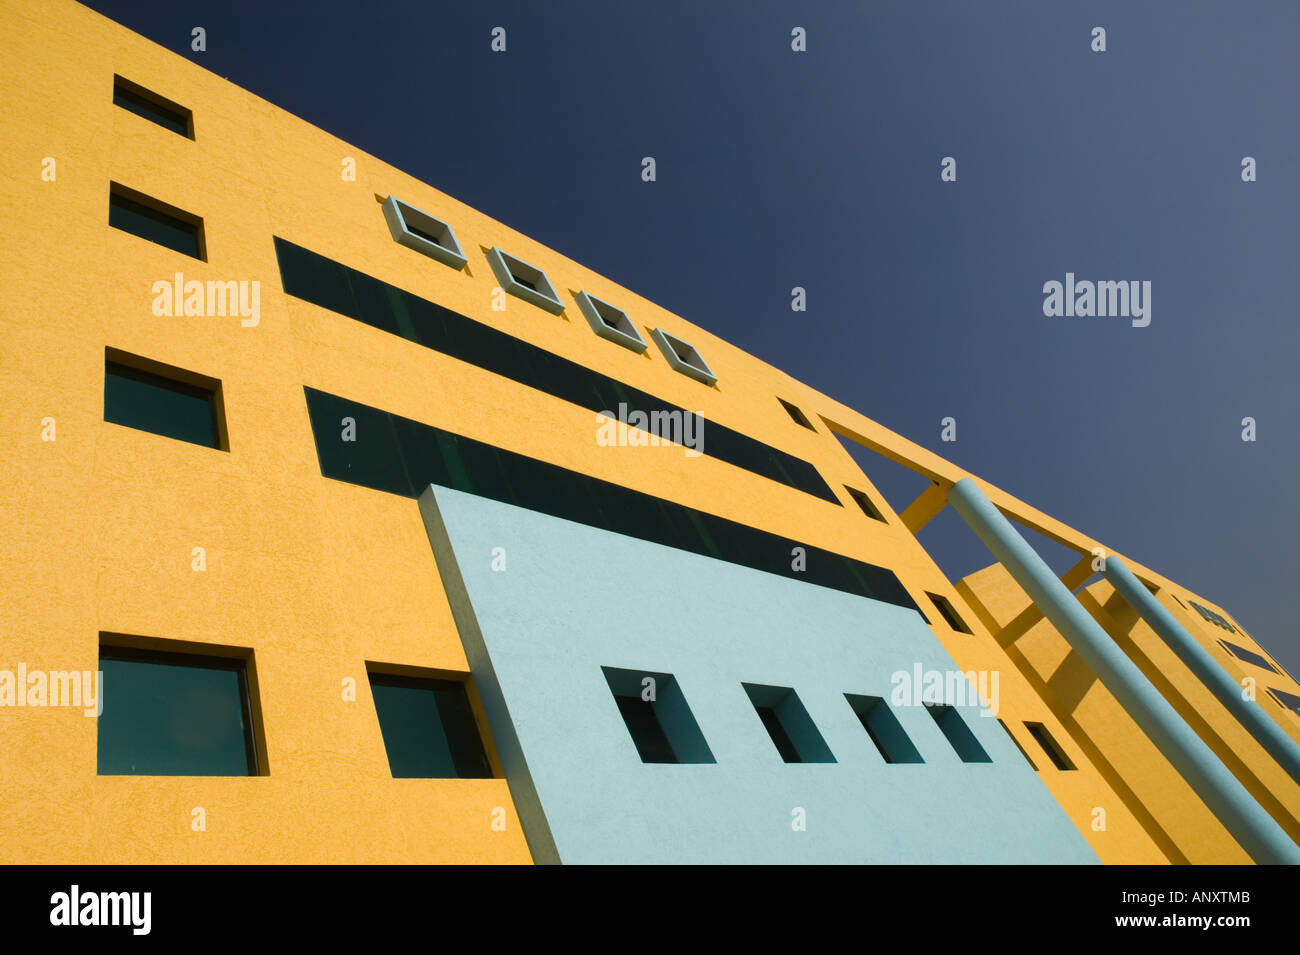 INDIA, Andhra Pradesh, Hyderabad: HITEC CITY, Major center of Indian Software Call Centre Industry. Kanbay / JVP Building - Stock Image